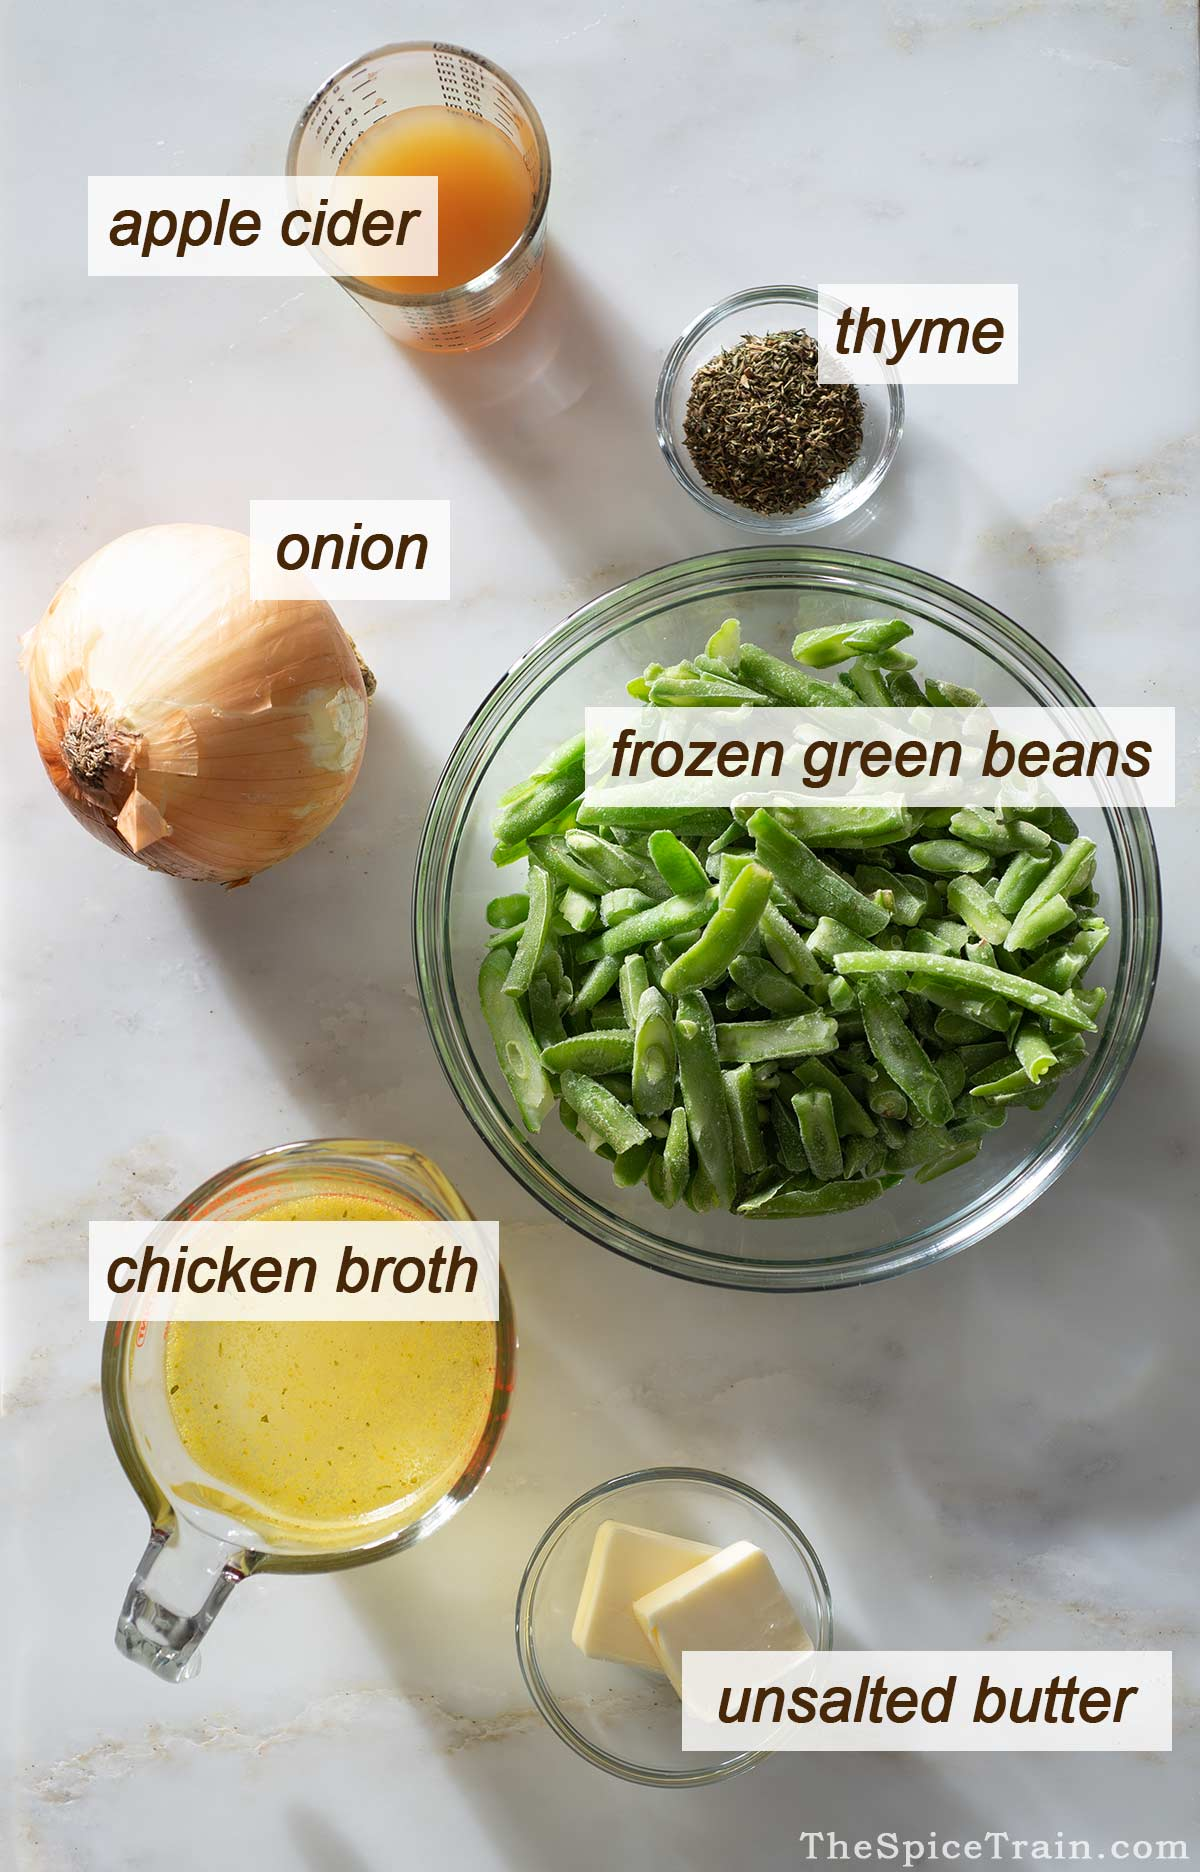 Green bean side dish ingredients on a kitchen counter.